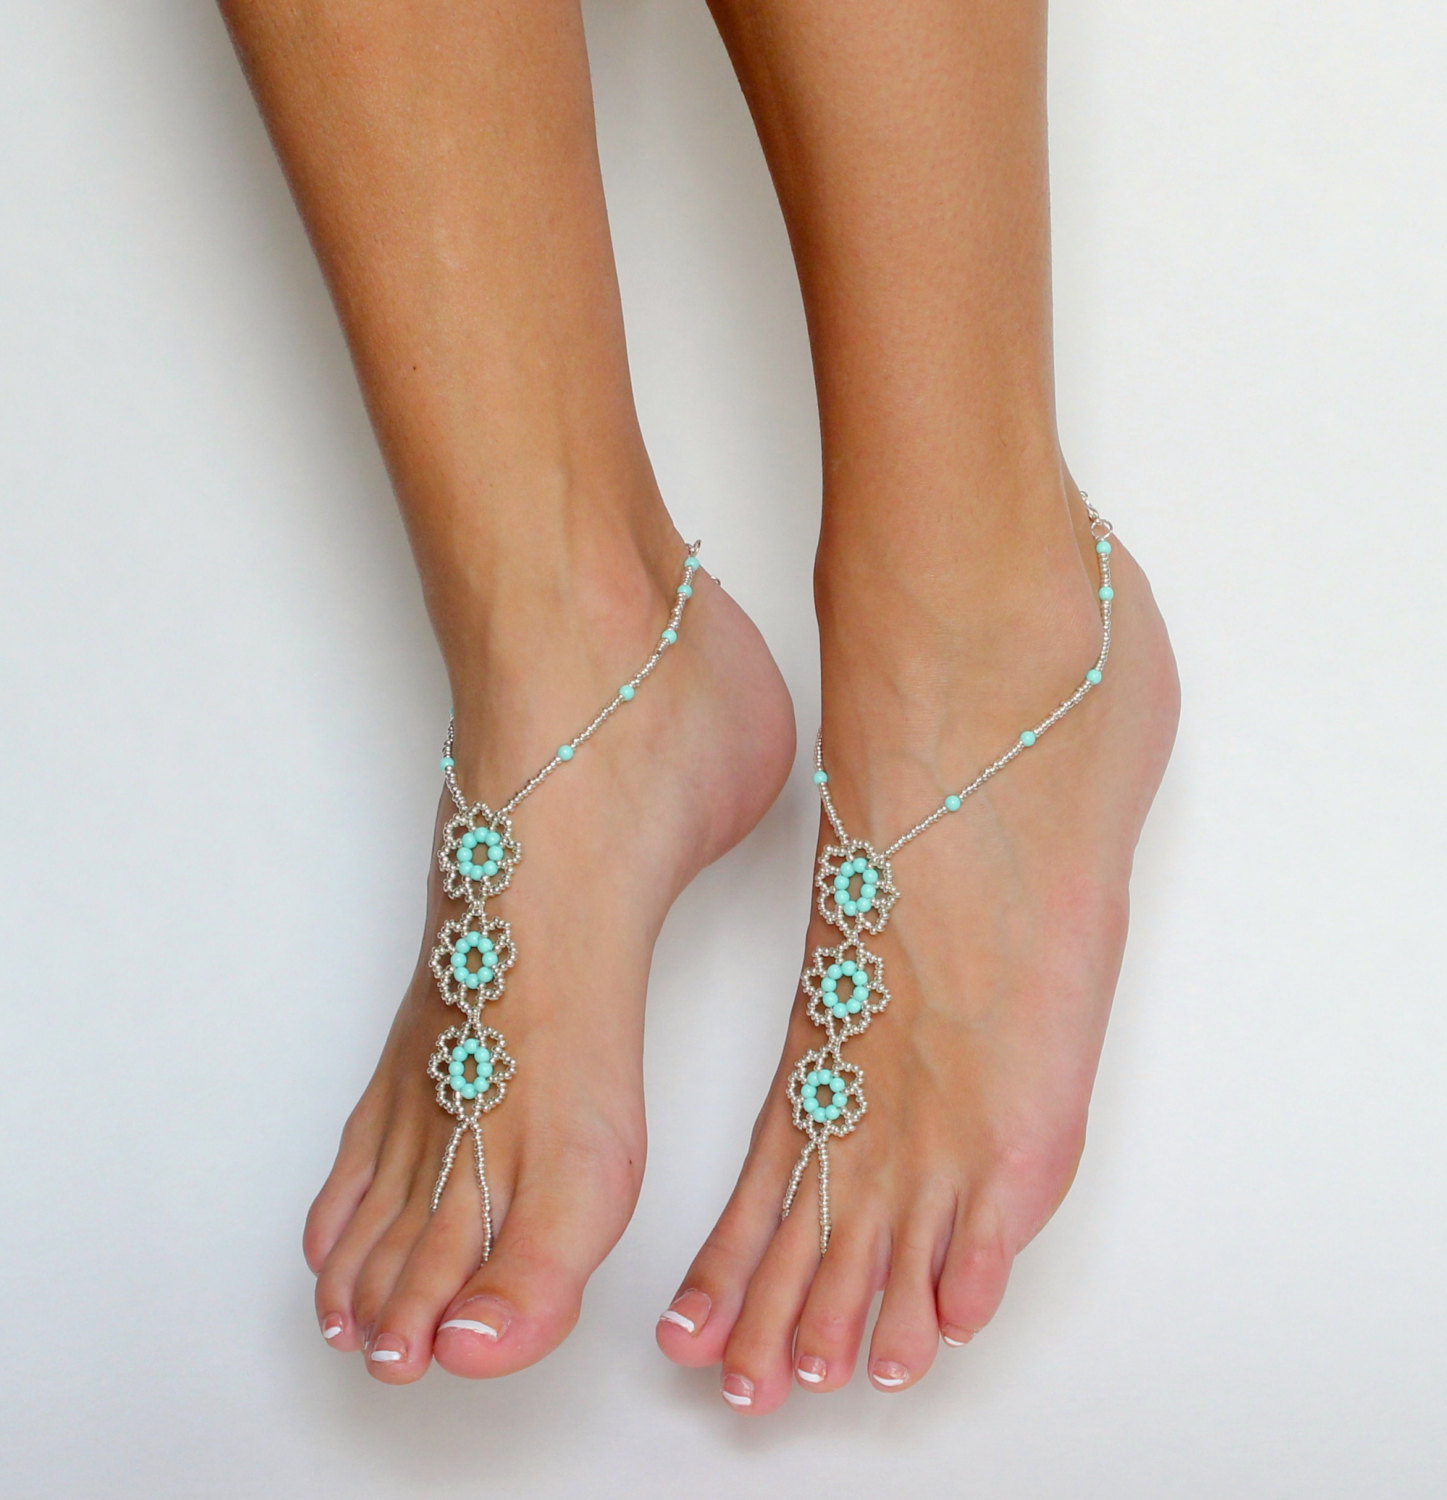 jewelry bridal bracelet ethnic wedding par ankle anklet itm barefoot chain